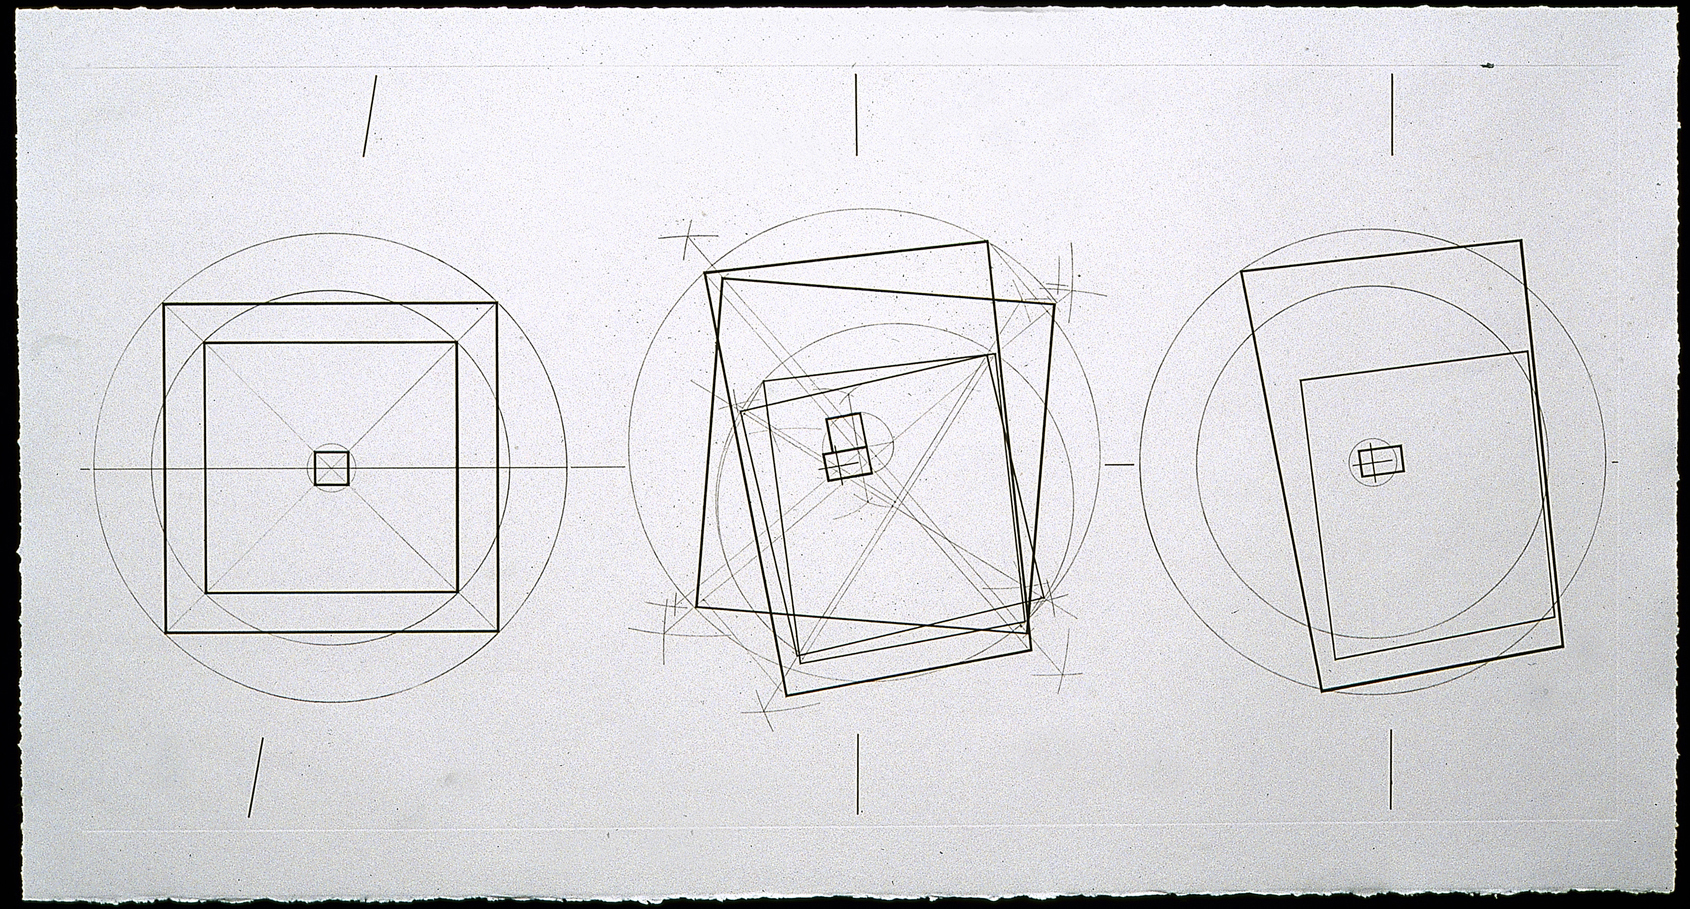 Robert Kirschbaum     Squaring the Mount, No. 3   , 1998    Etching    32 1/2 x 65 inches